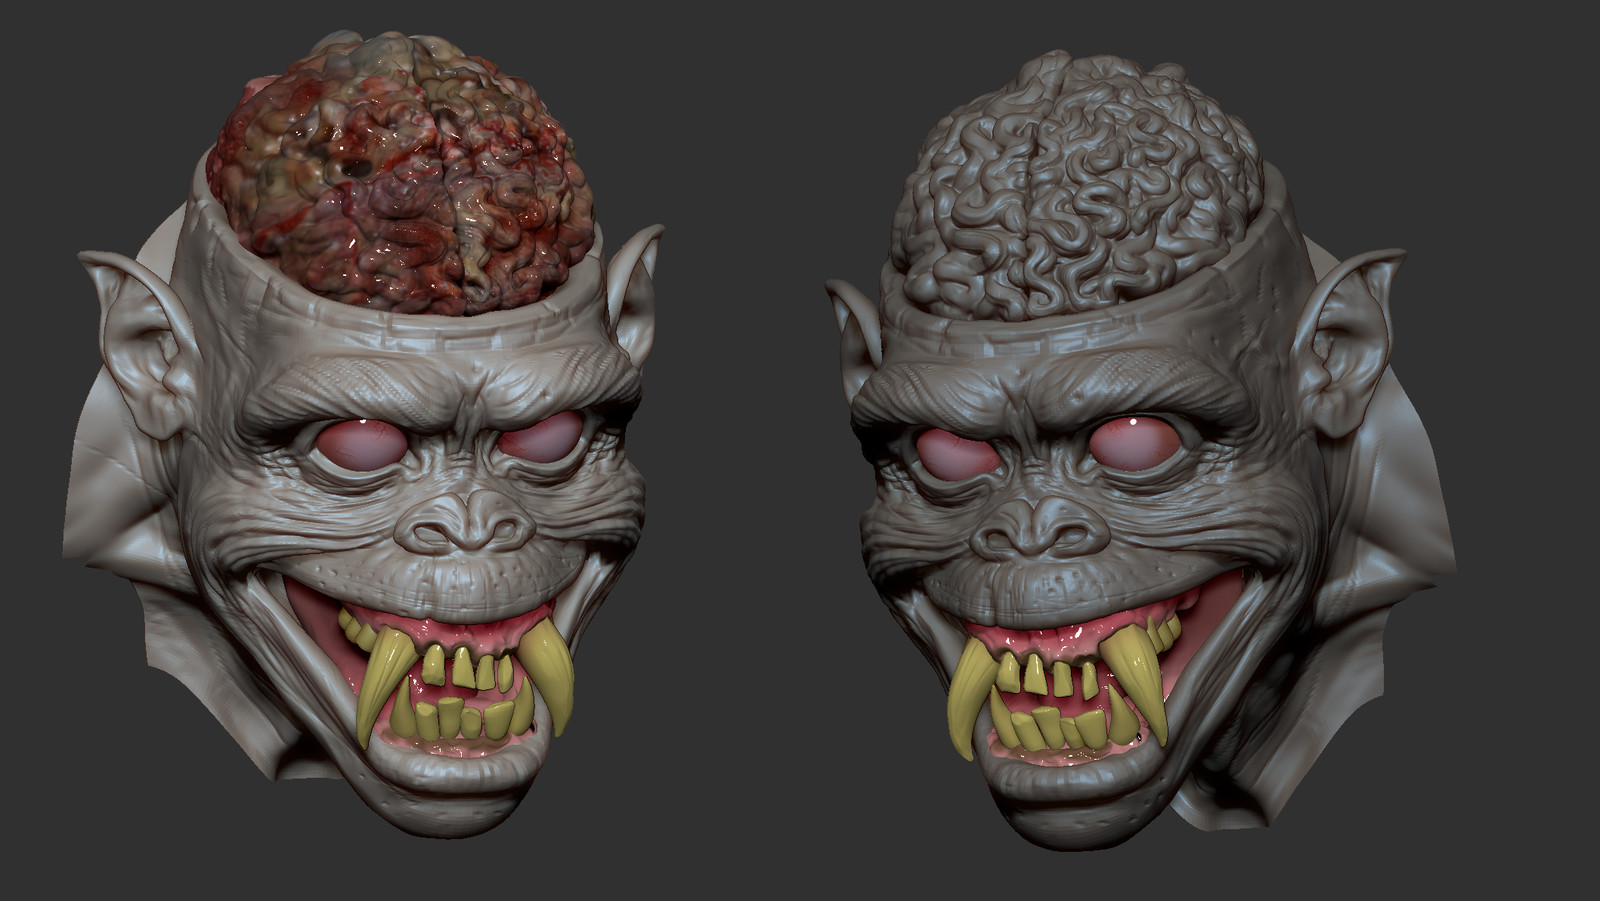 Skull 3d sculpt based upon an original concept by Patrick Magee aka Mageefx